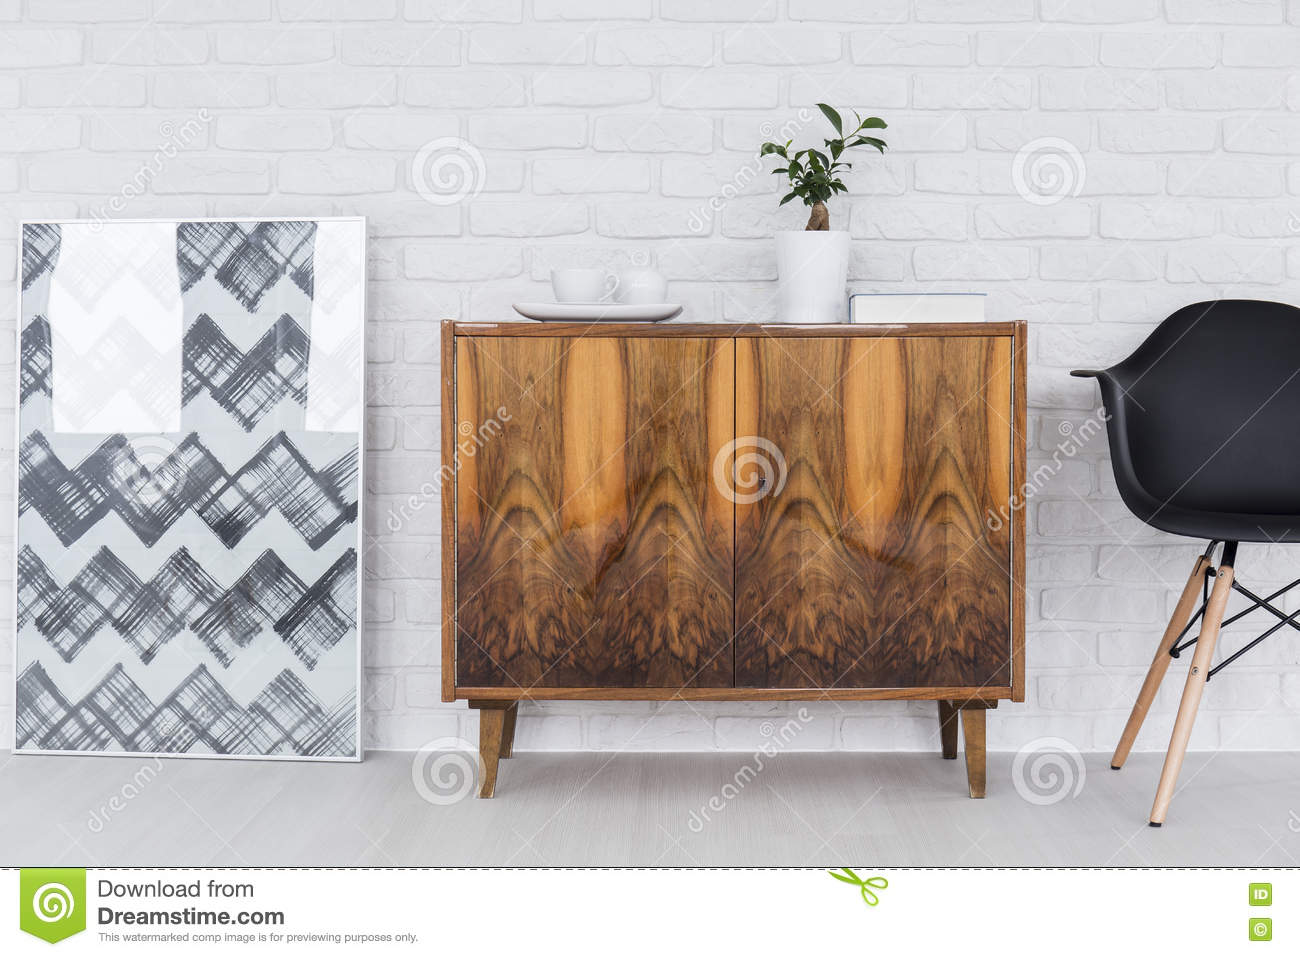 Furniture And Decorations Home Design Ideas Stock Photo